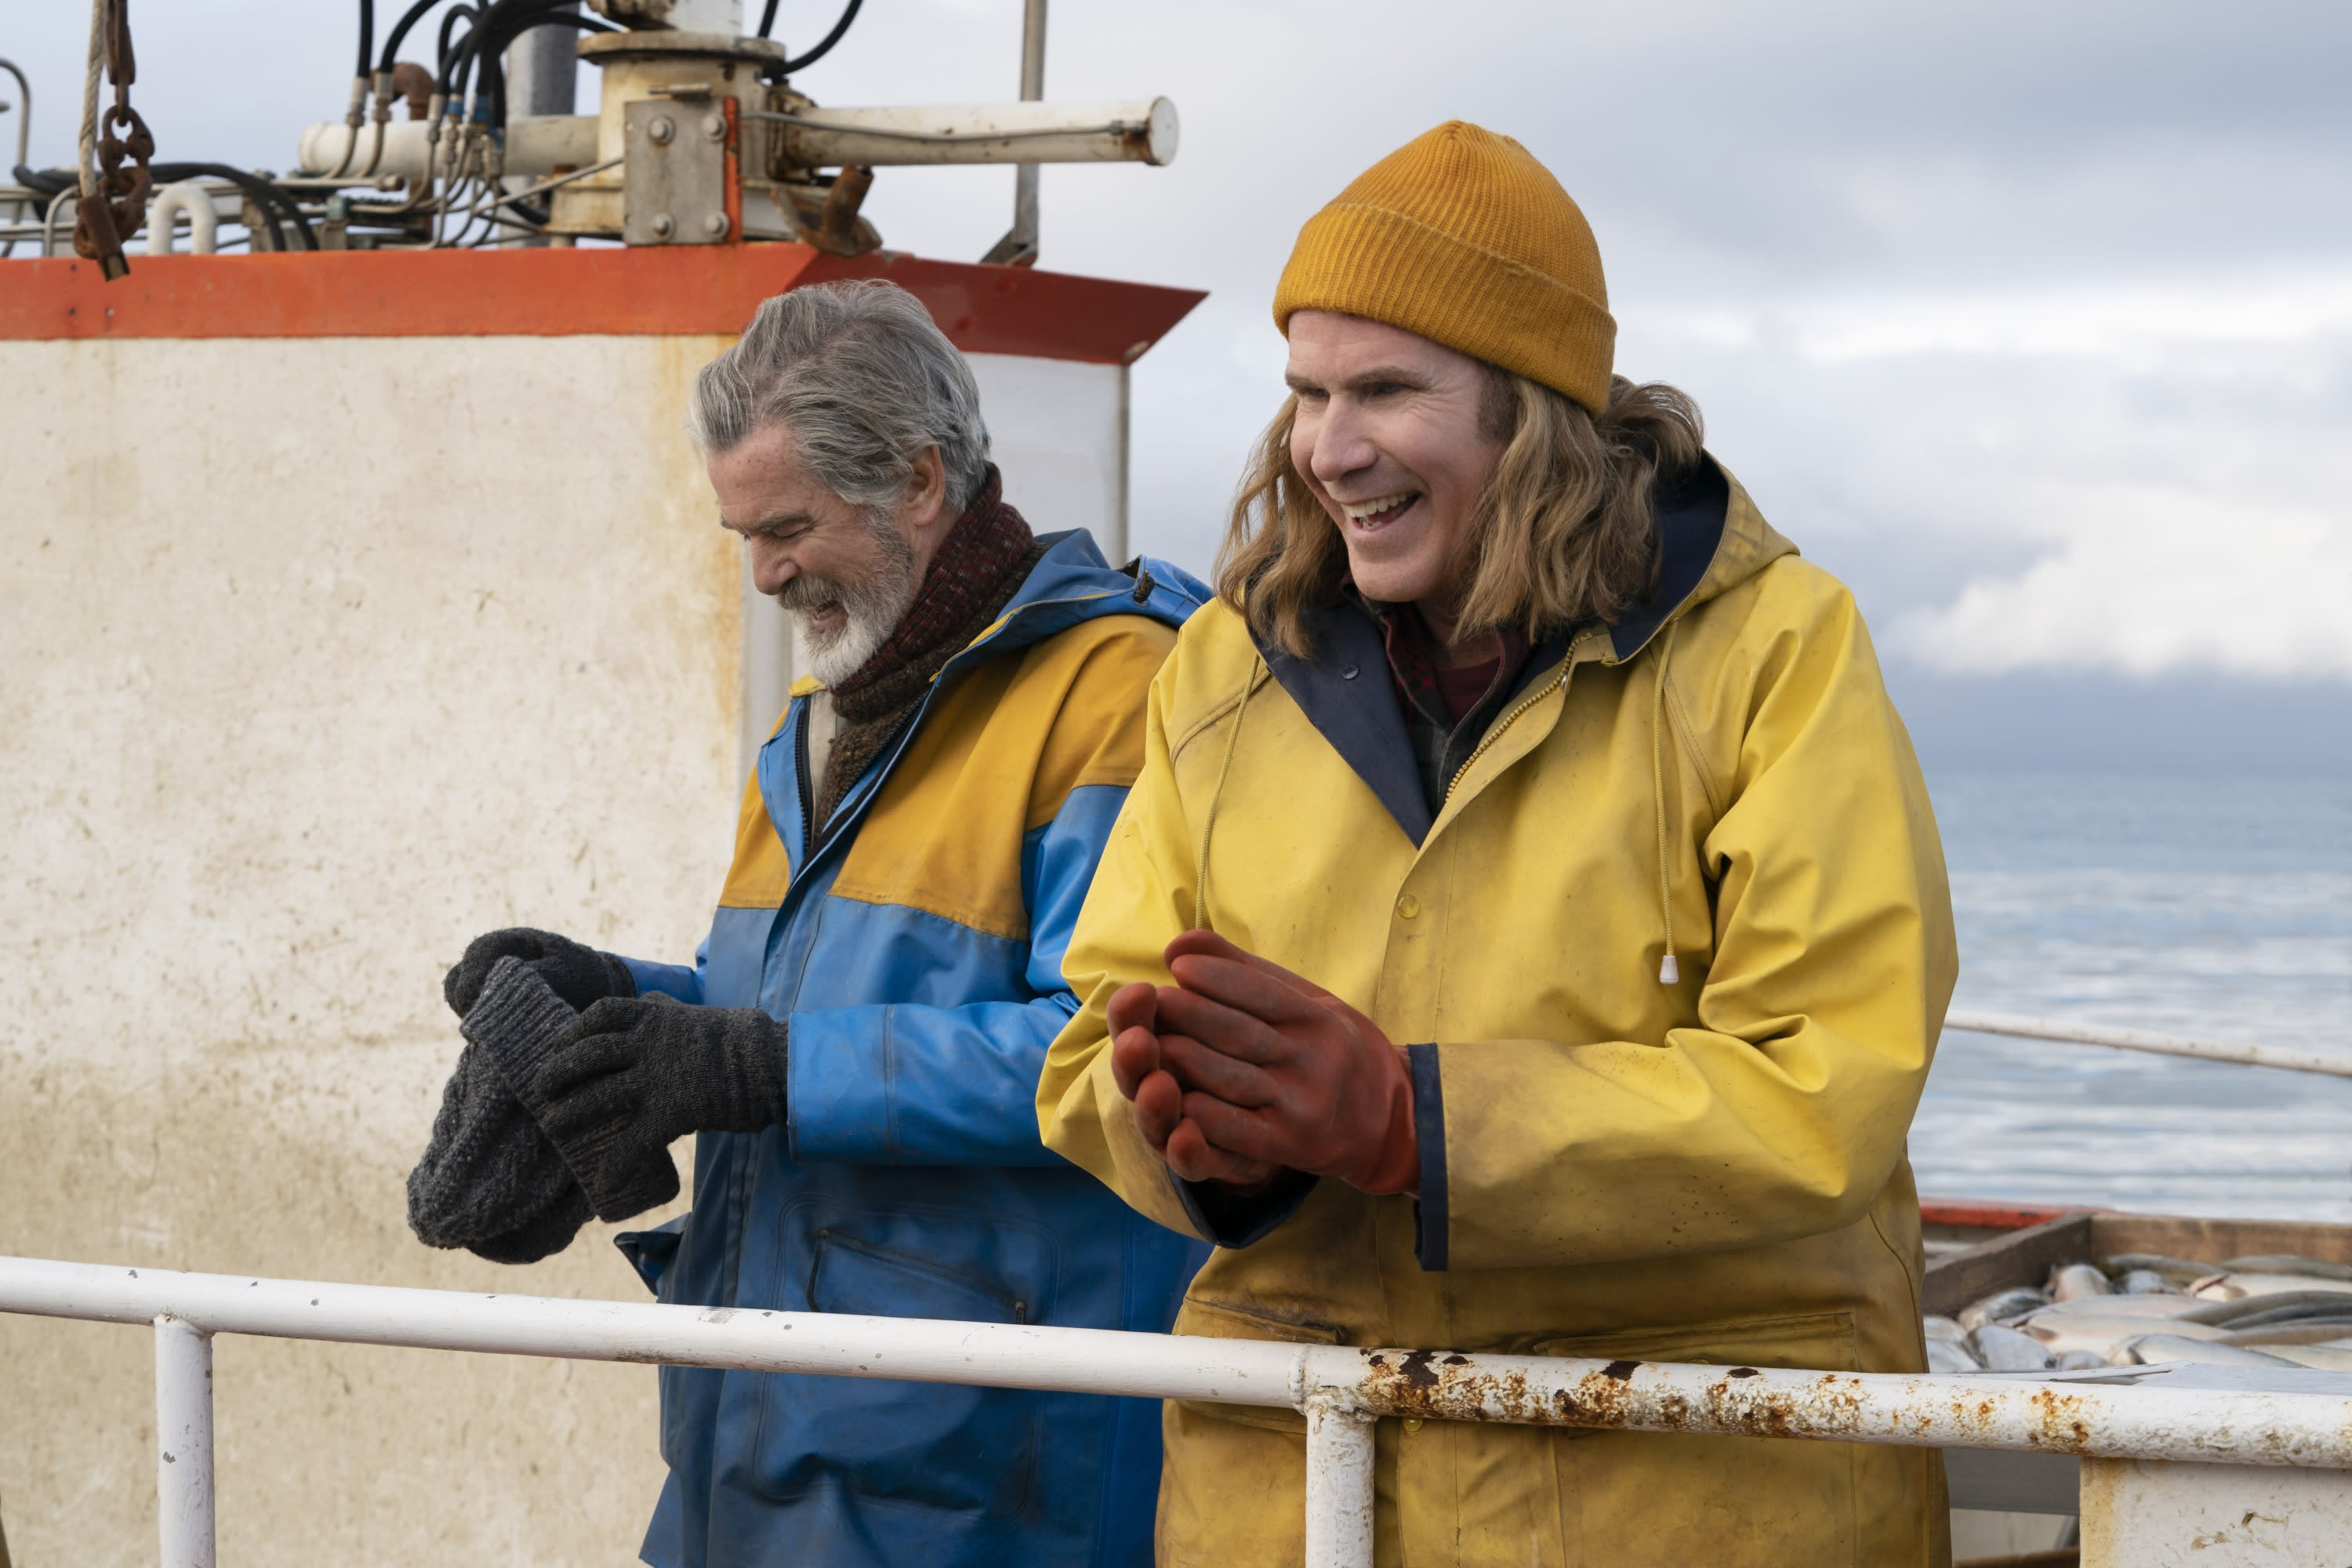 Will Ferrell pictured dressed as a fisherman onboard a fishing ship in Iceland